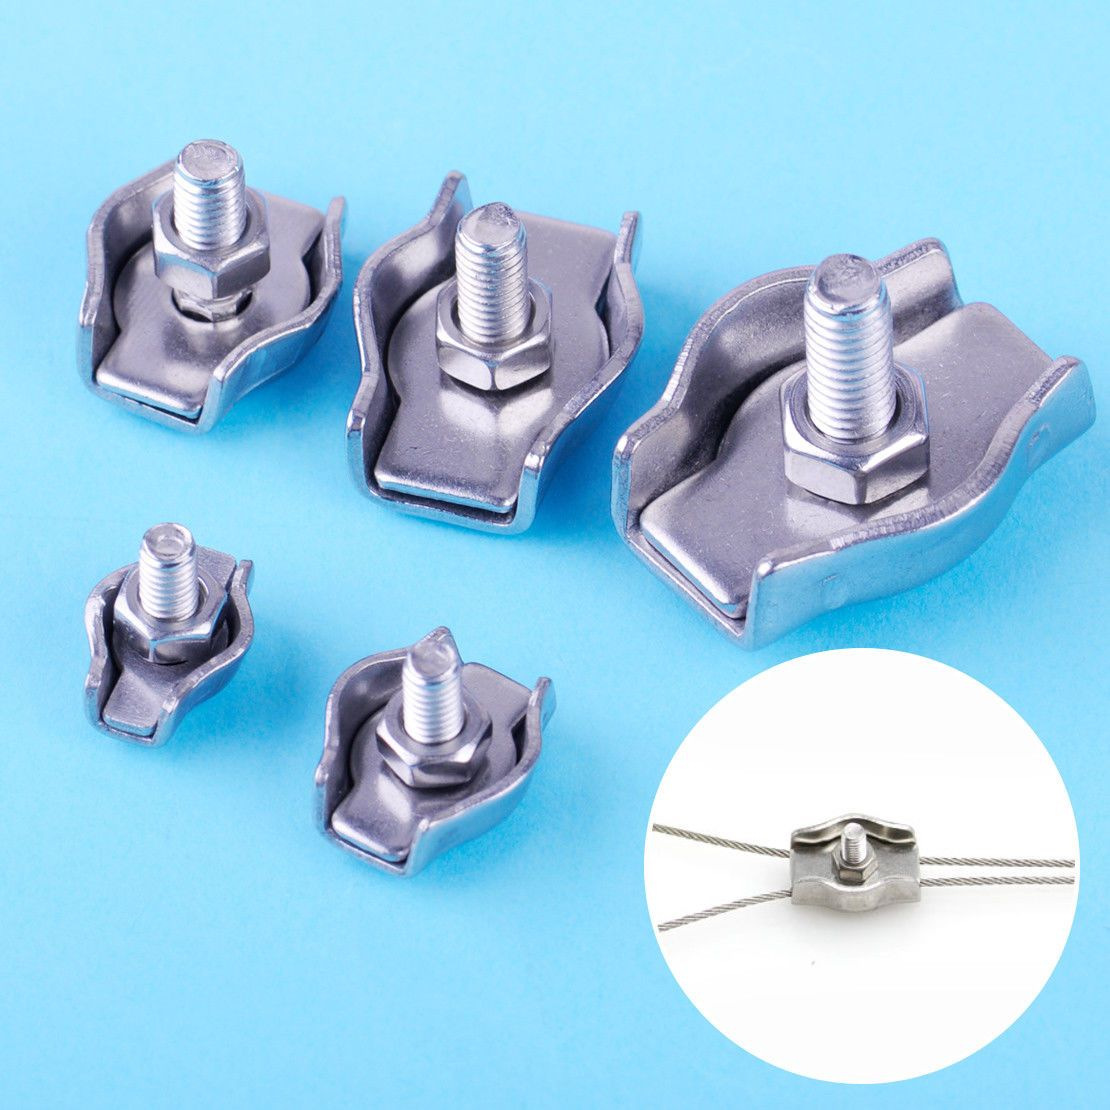 10X Simplex Marine 304 Stainless Steel Wire Rope Grip Cable Clamp M2 ...